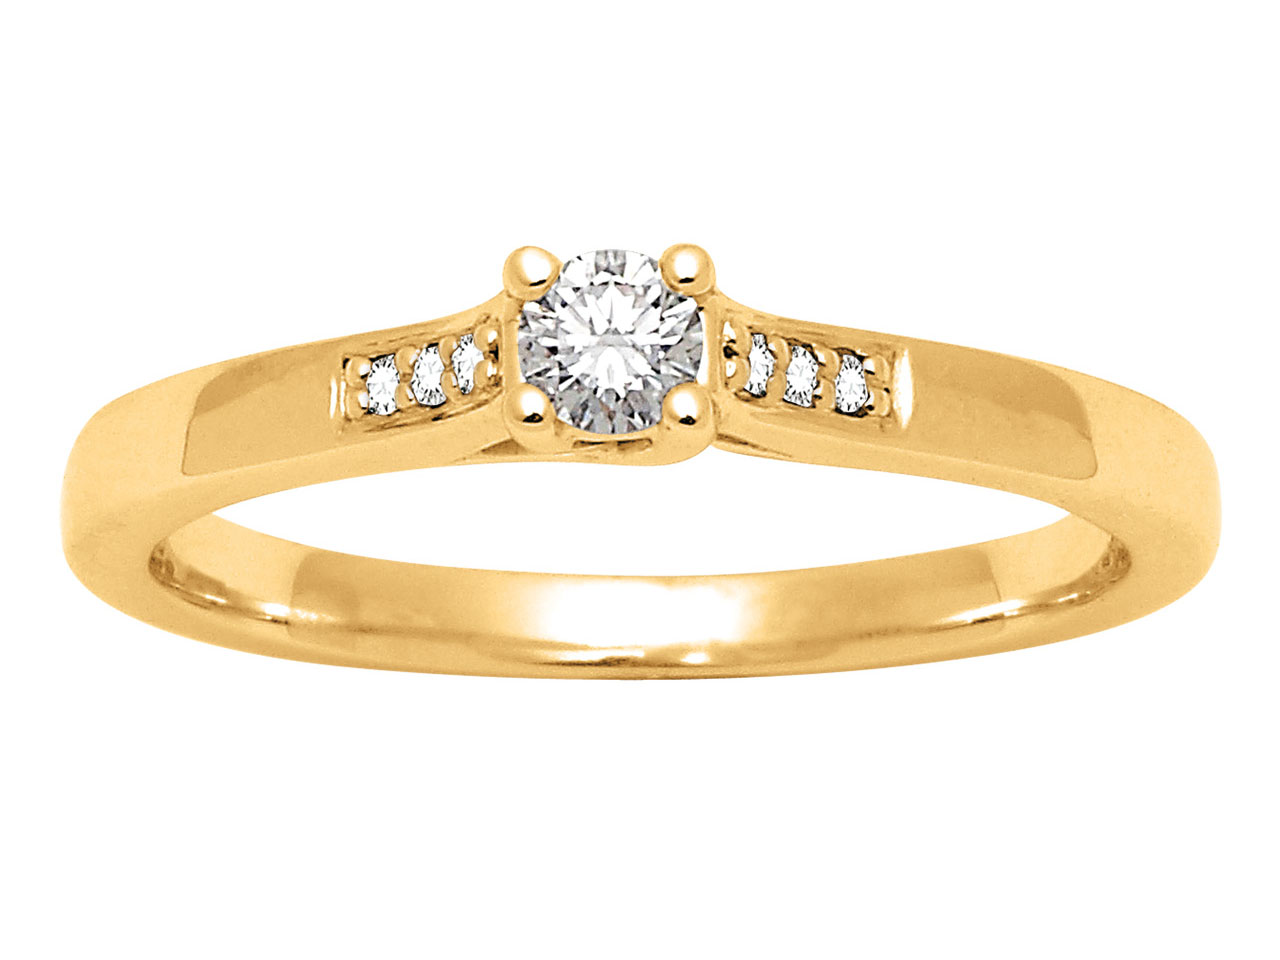 Solitaire accompagné, Or jaune18 k, Dts 0,13 ct, doigt 56